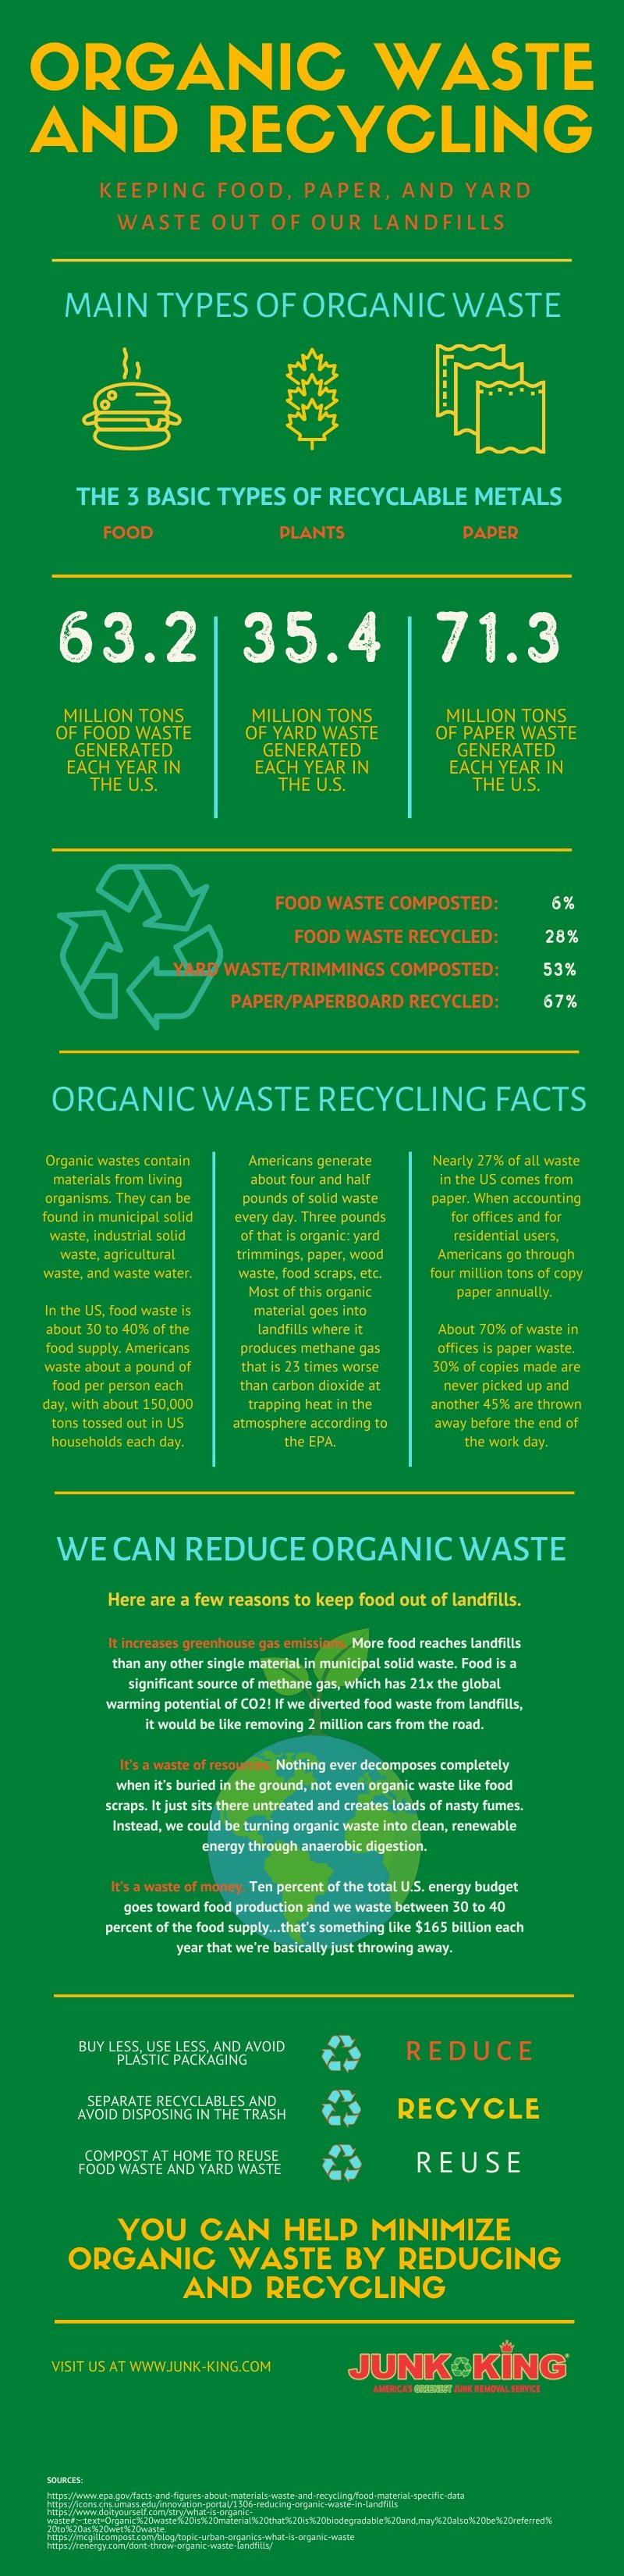 organic waste and recycling-1